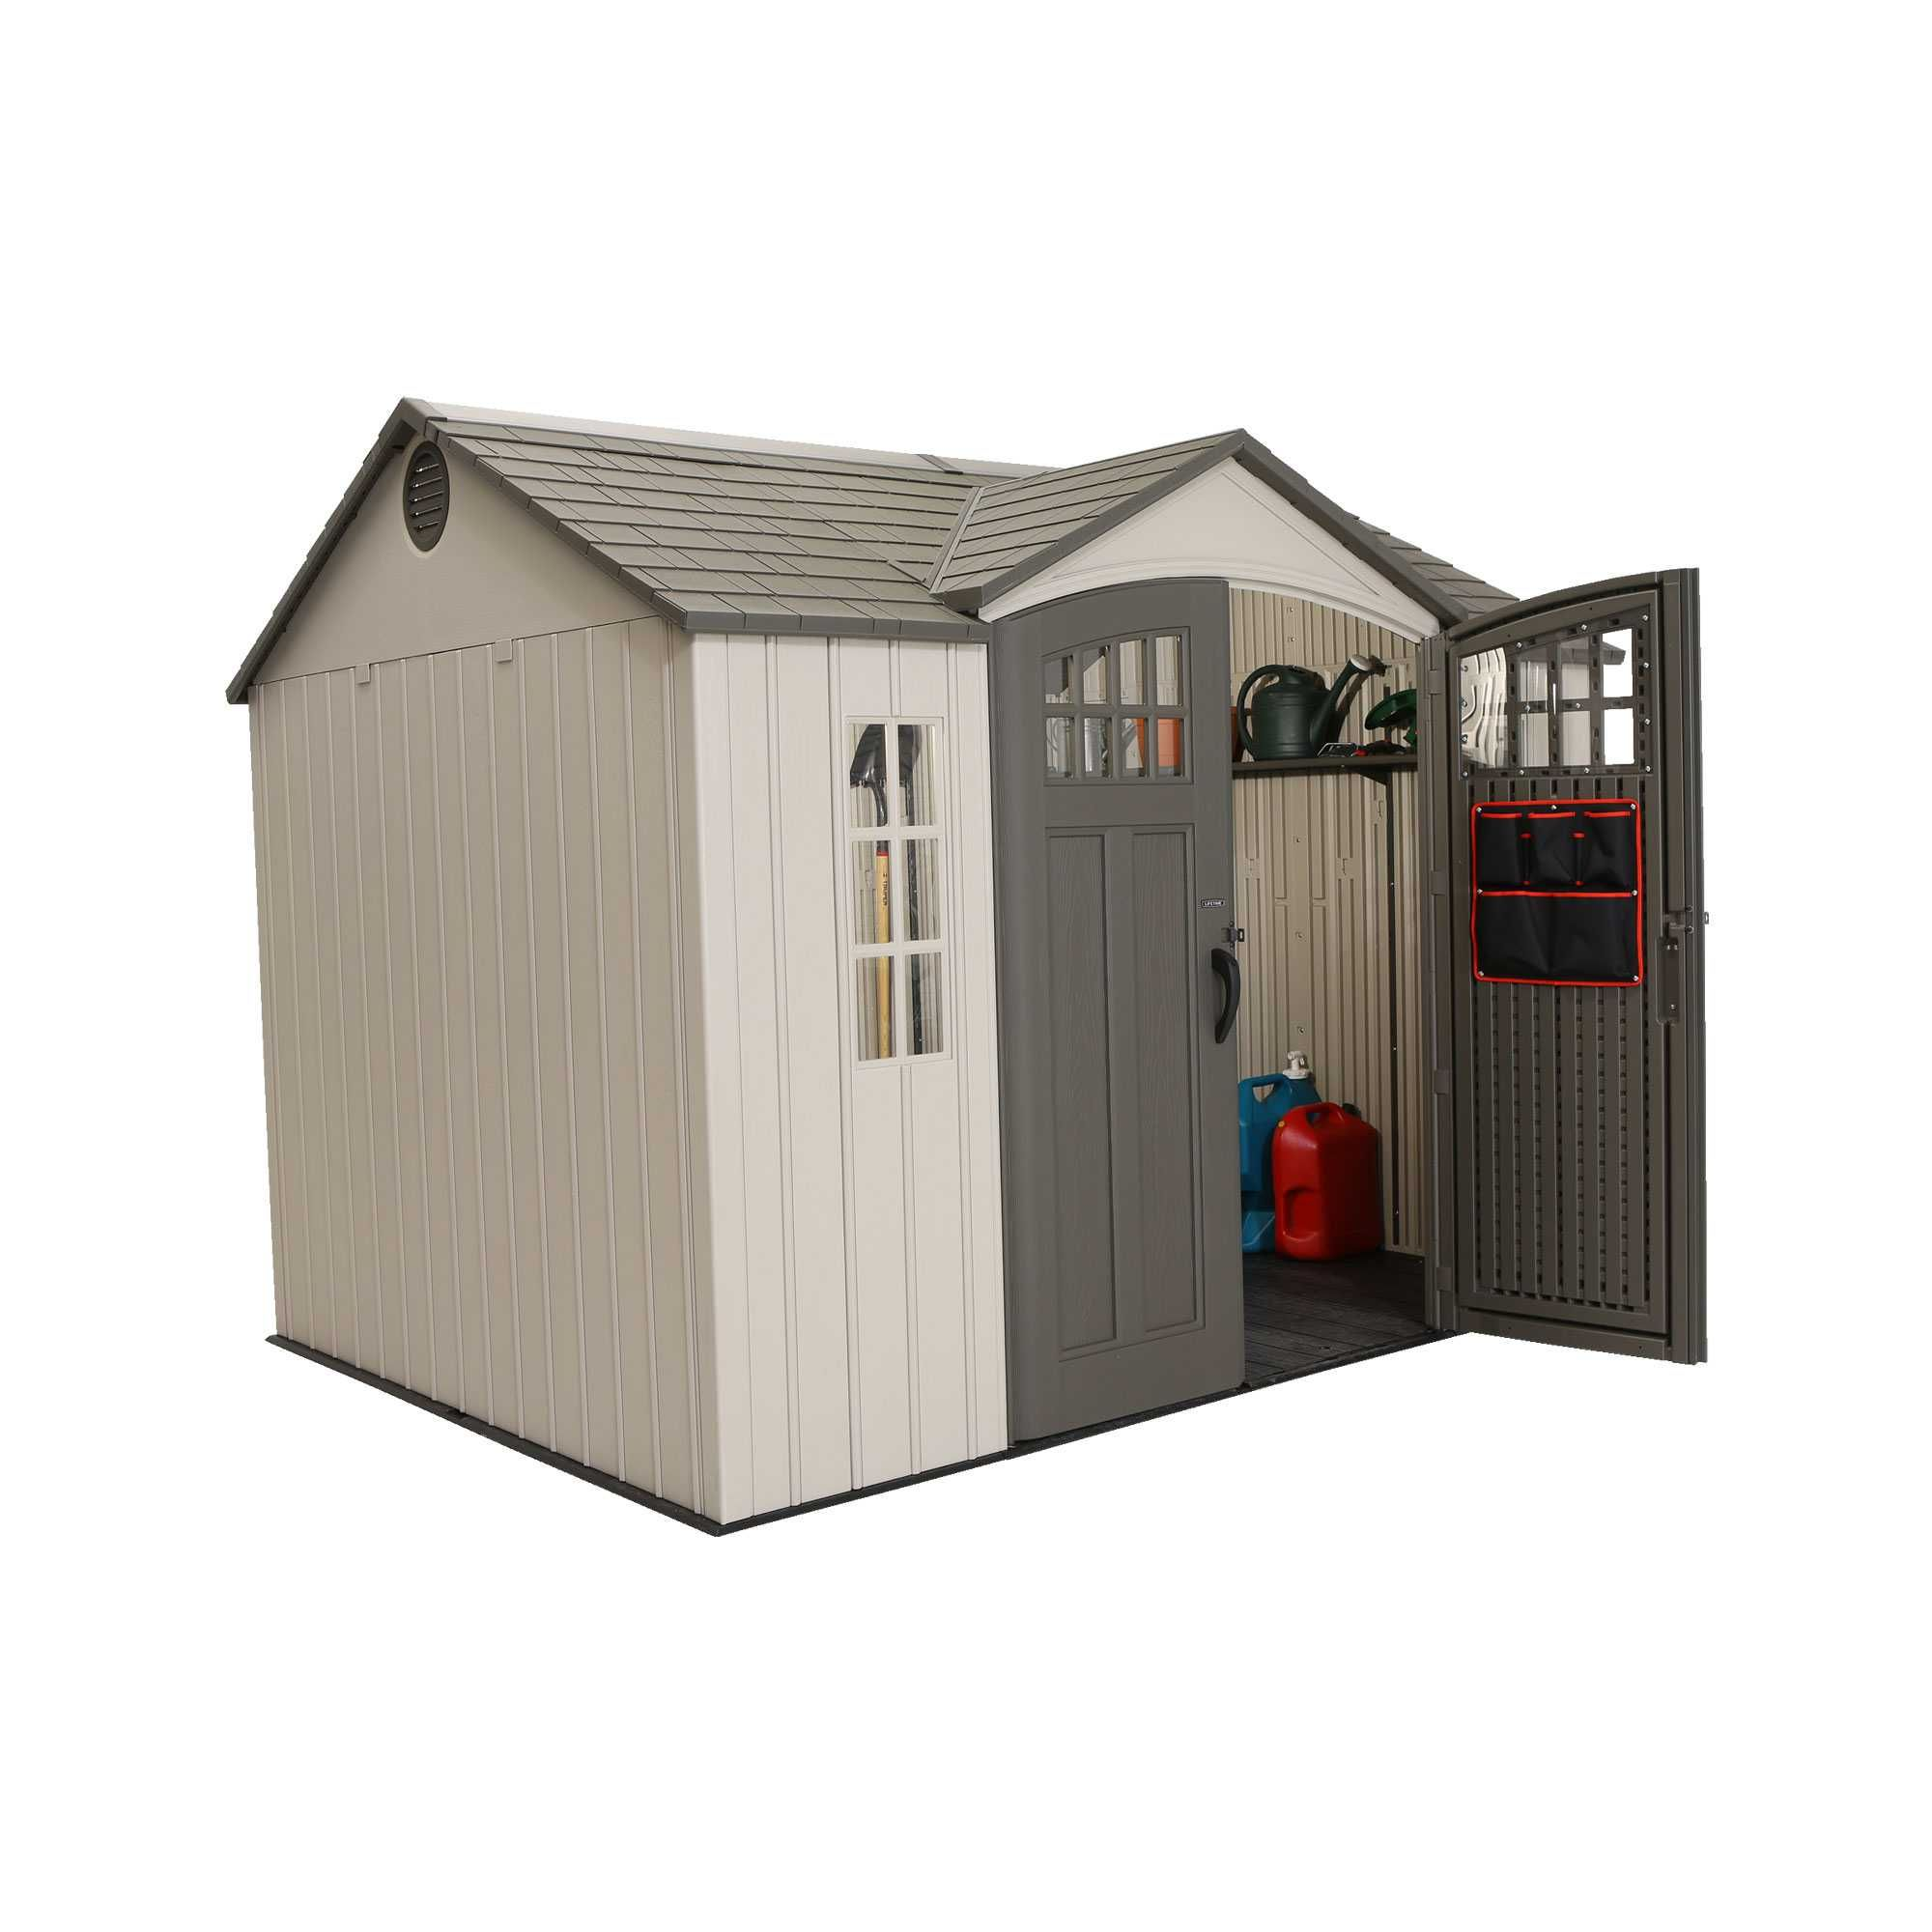 60106 71 25 Square Ft 494 5 Cubic Ft The Lifetime 10 X 8 Garden Building Features Vertical Siding Lifetime Storage Sheds Vertical Siding Shed Storage